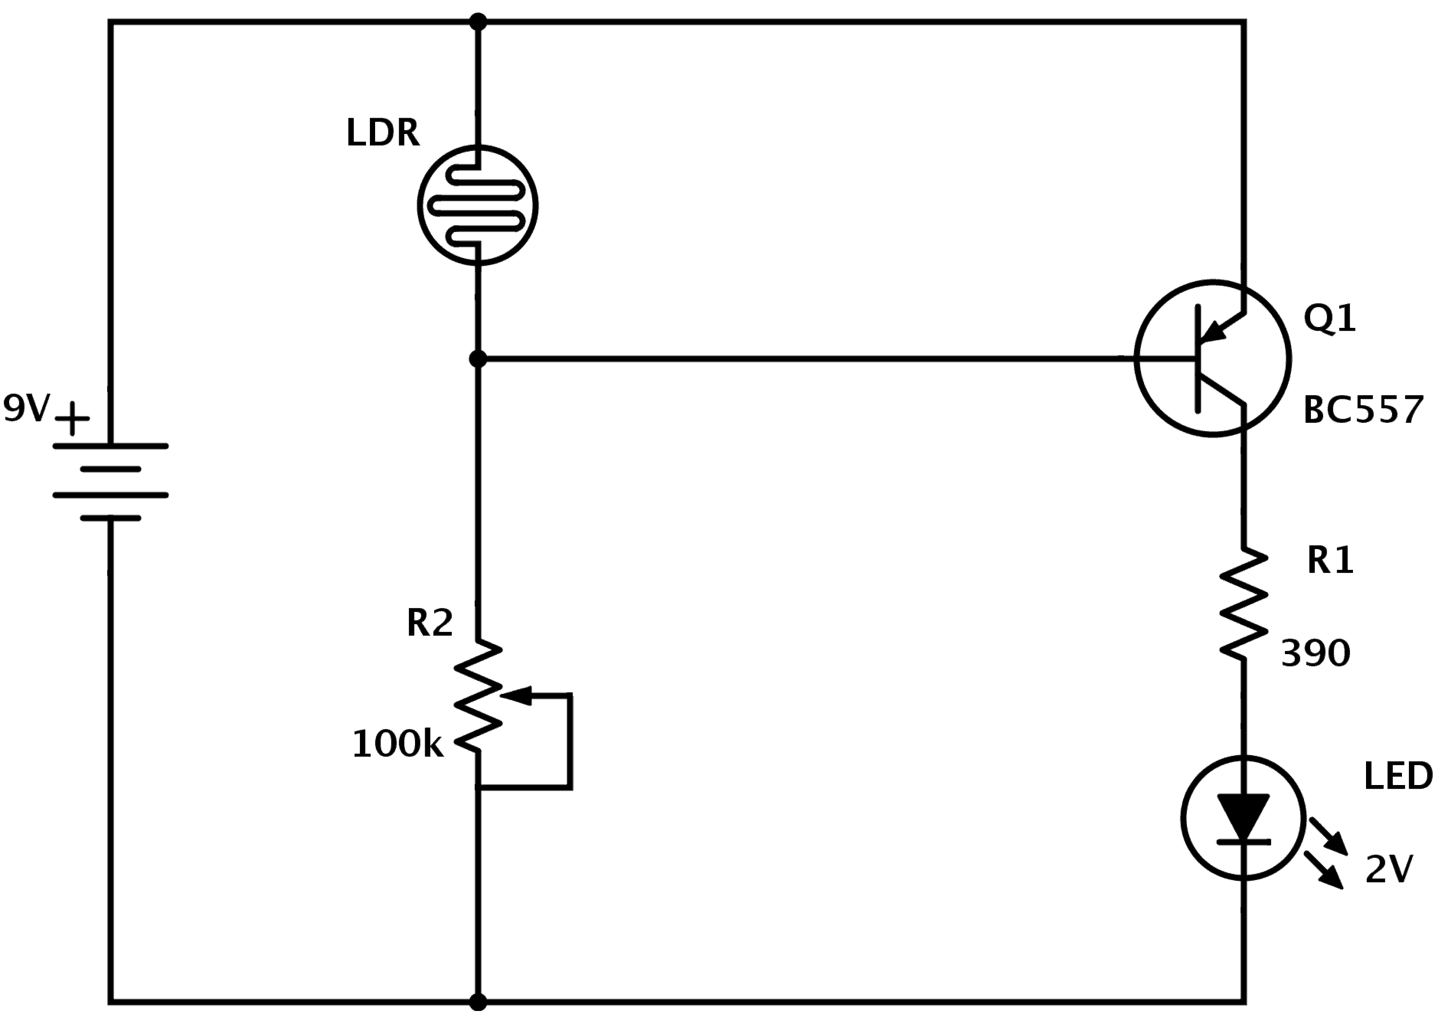 Ldr Circuit Diagram Build Electronic Circuits Simple Digital Pulser With Pnp Transistor Dark Detector